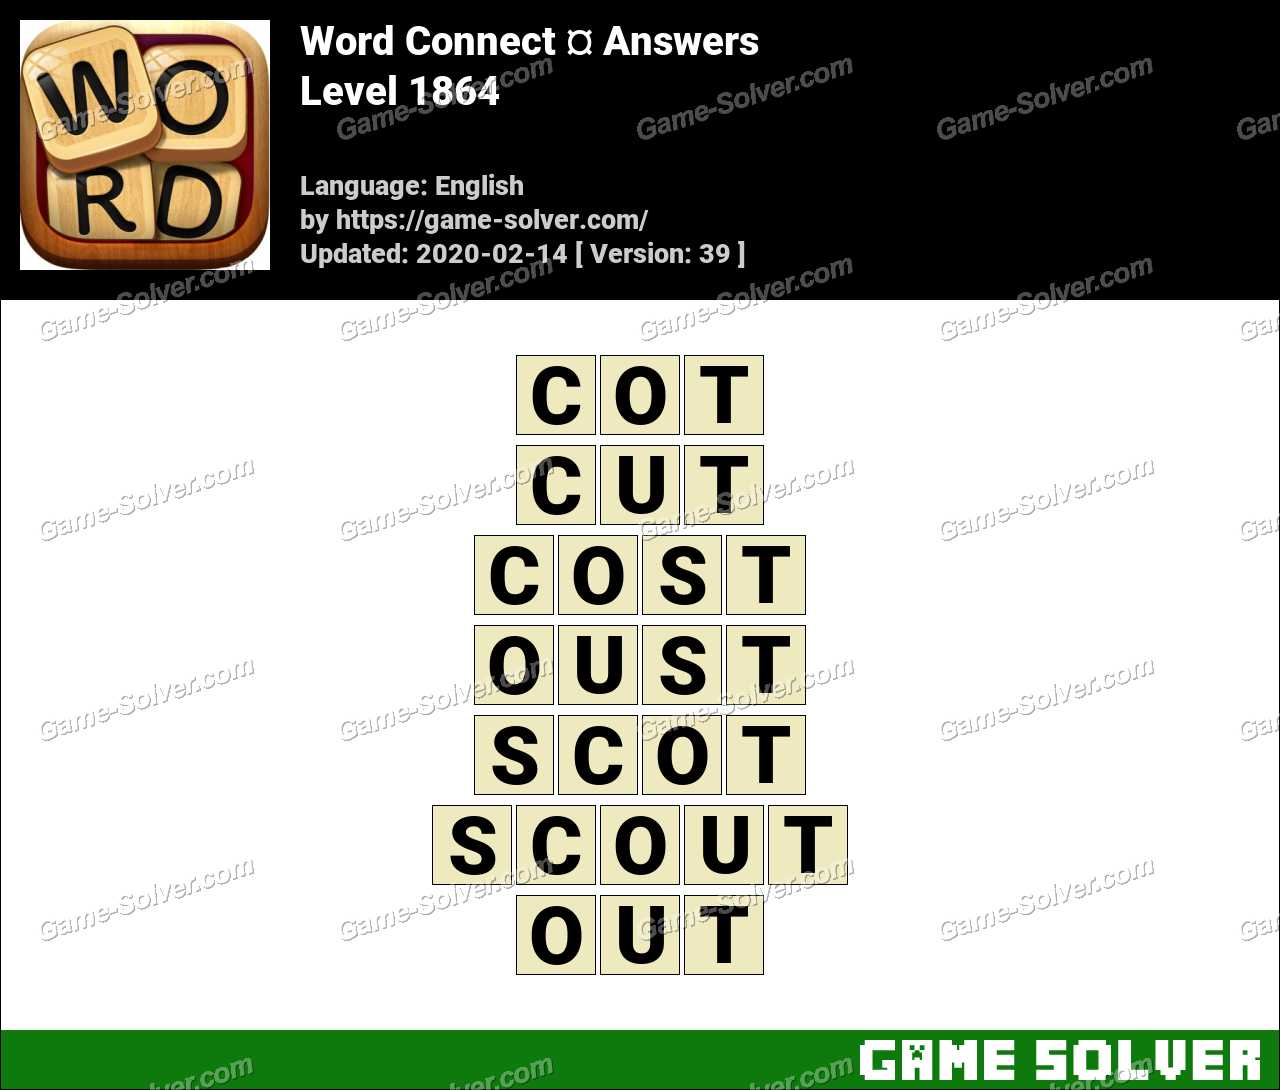 Word Connect Level 1864 Answers